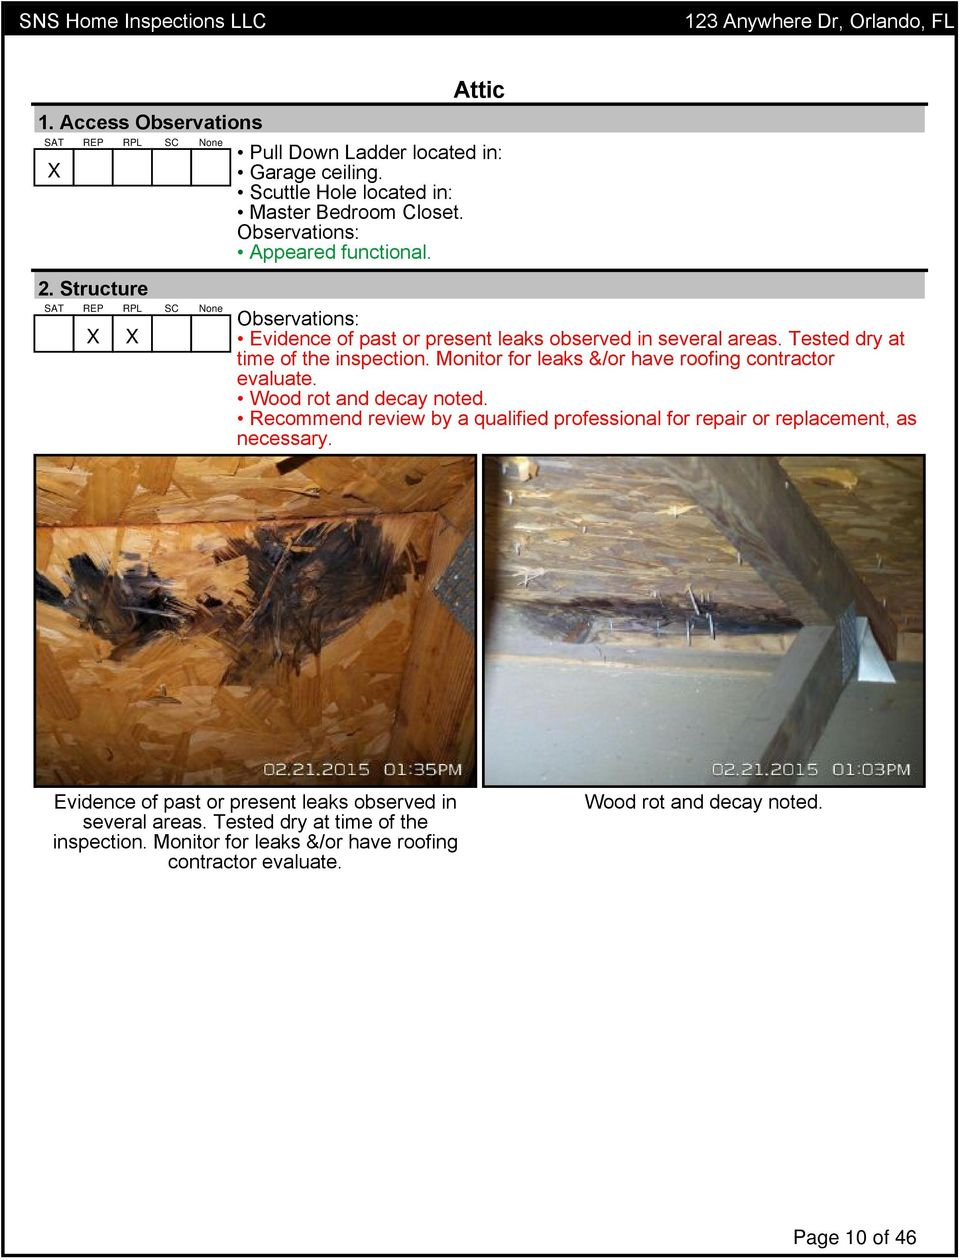 Monitor for leaks &/or have roofing contractor evaluate. Wood rot and decay noted.